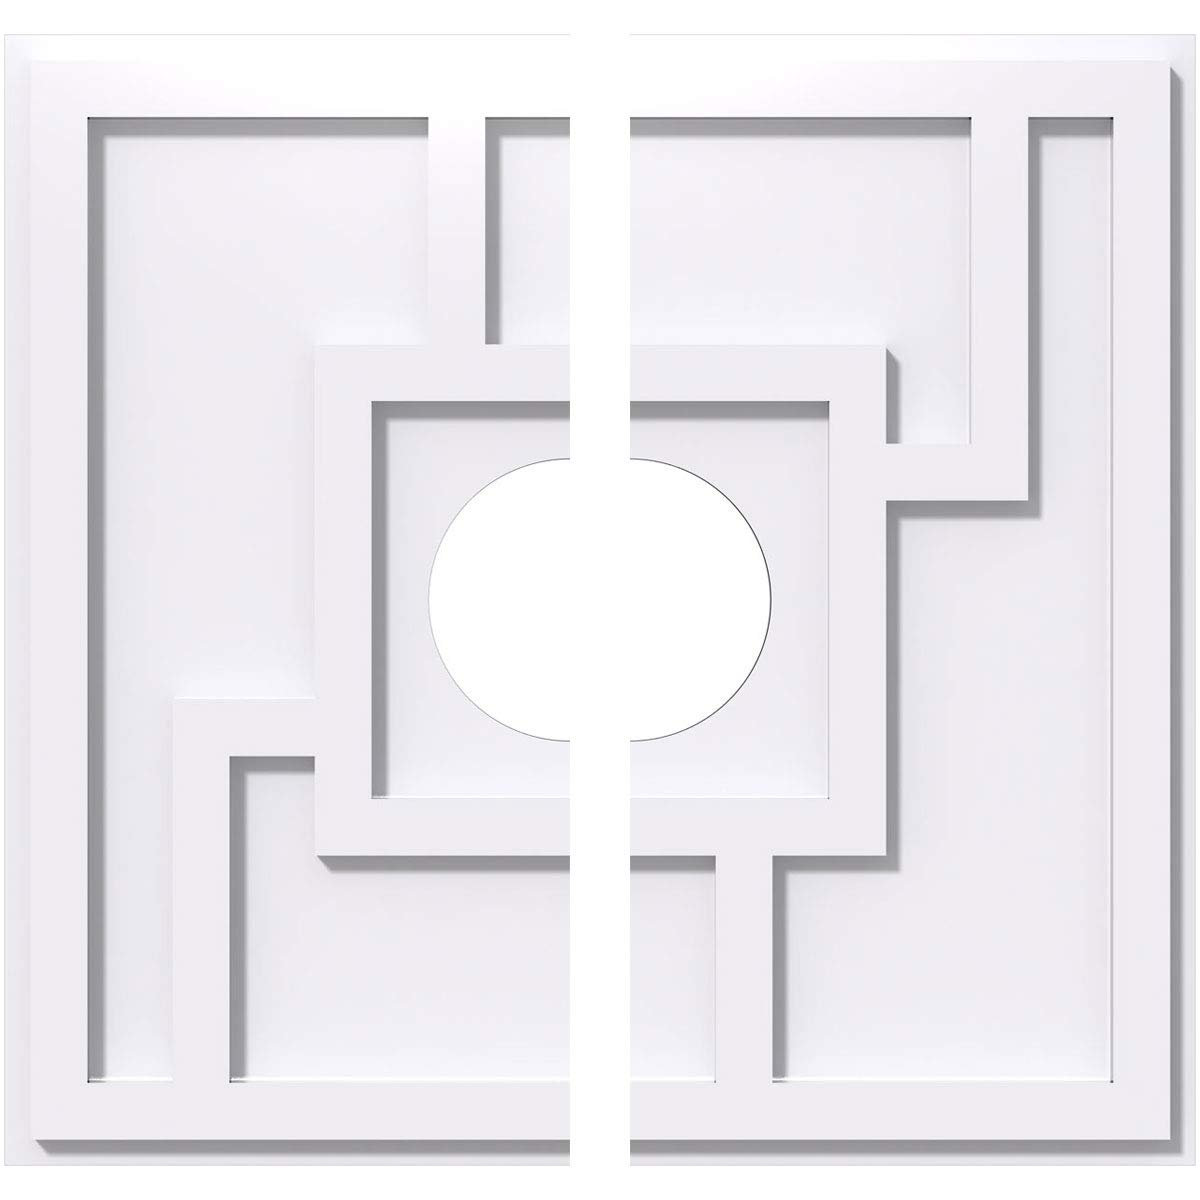 Ekena Millwork CMP28KX2-07000 28 in. OD x 7 in. ID Square Knox Architectural Grade PVC Contemporary Ceiling Medallion - 2 Piece